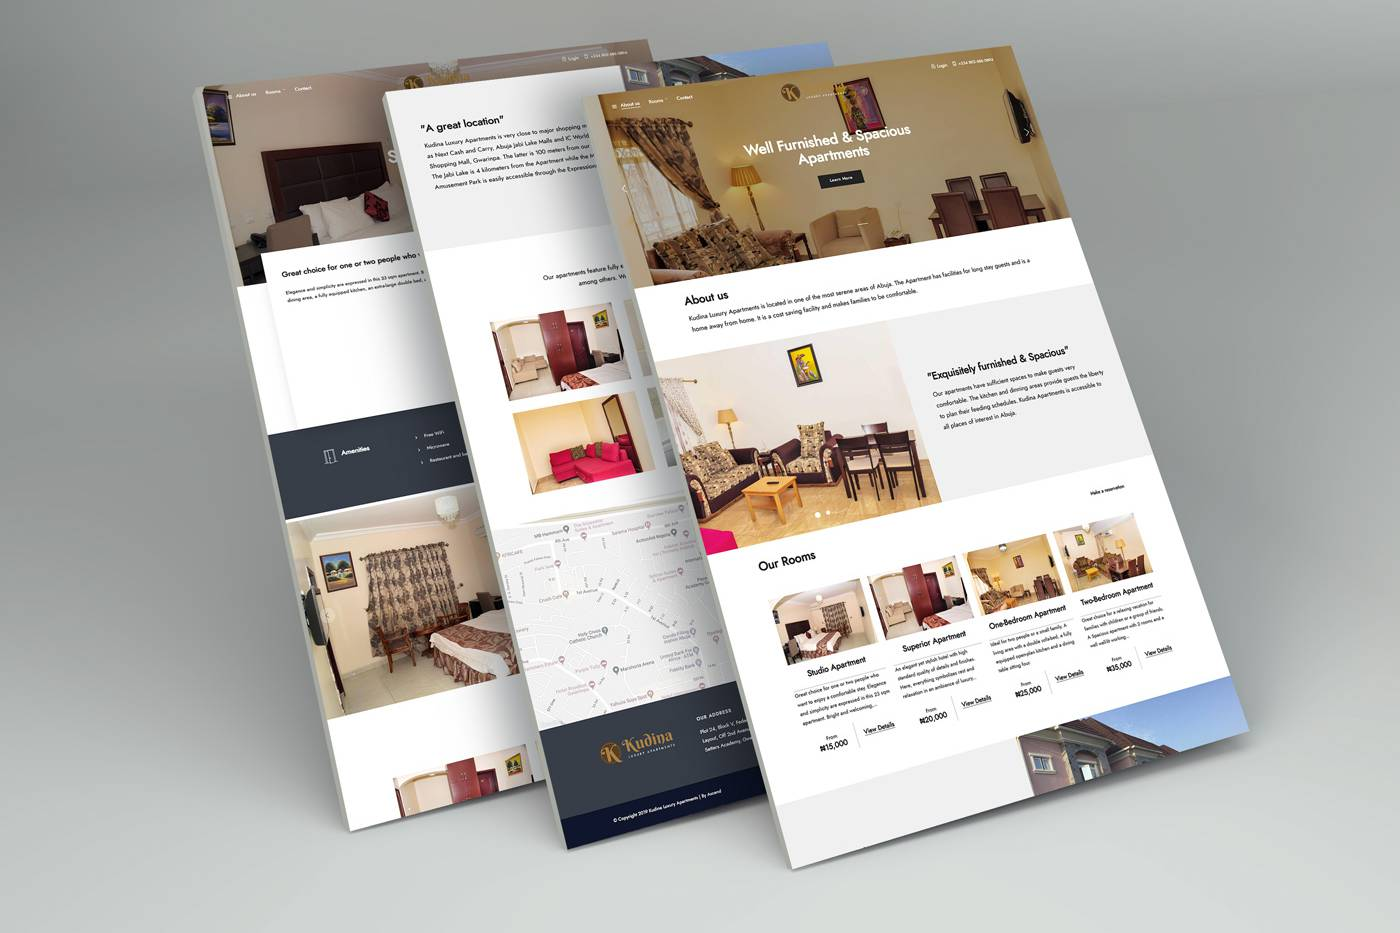 Hotel and Renting Apartments Website